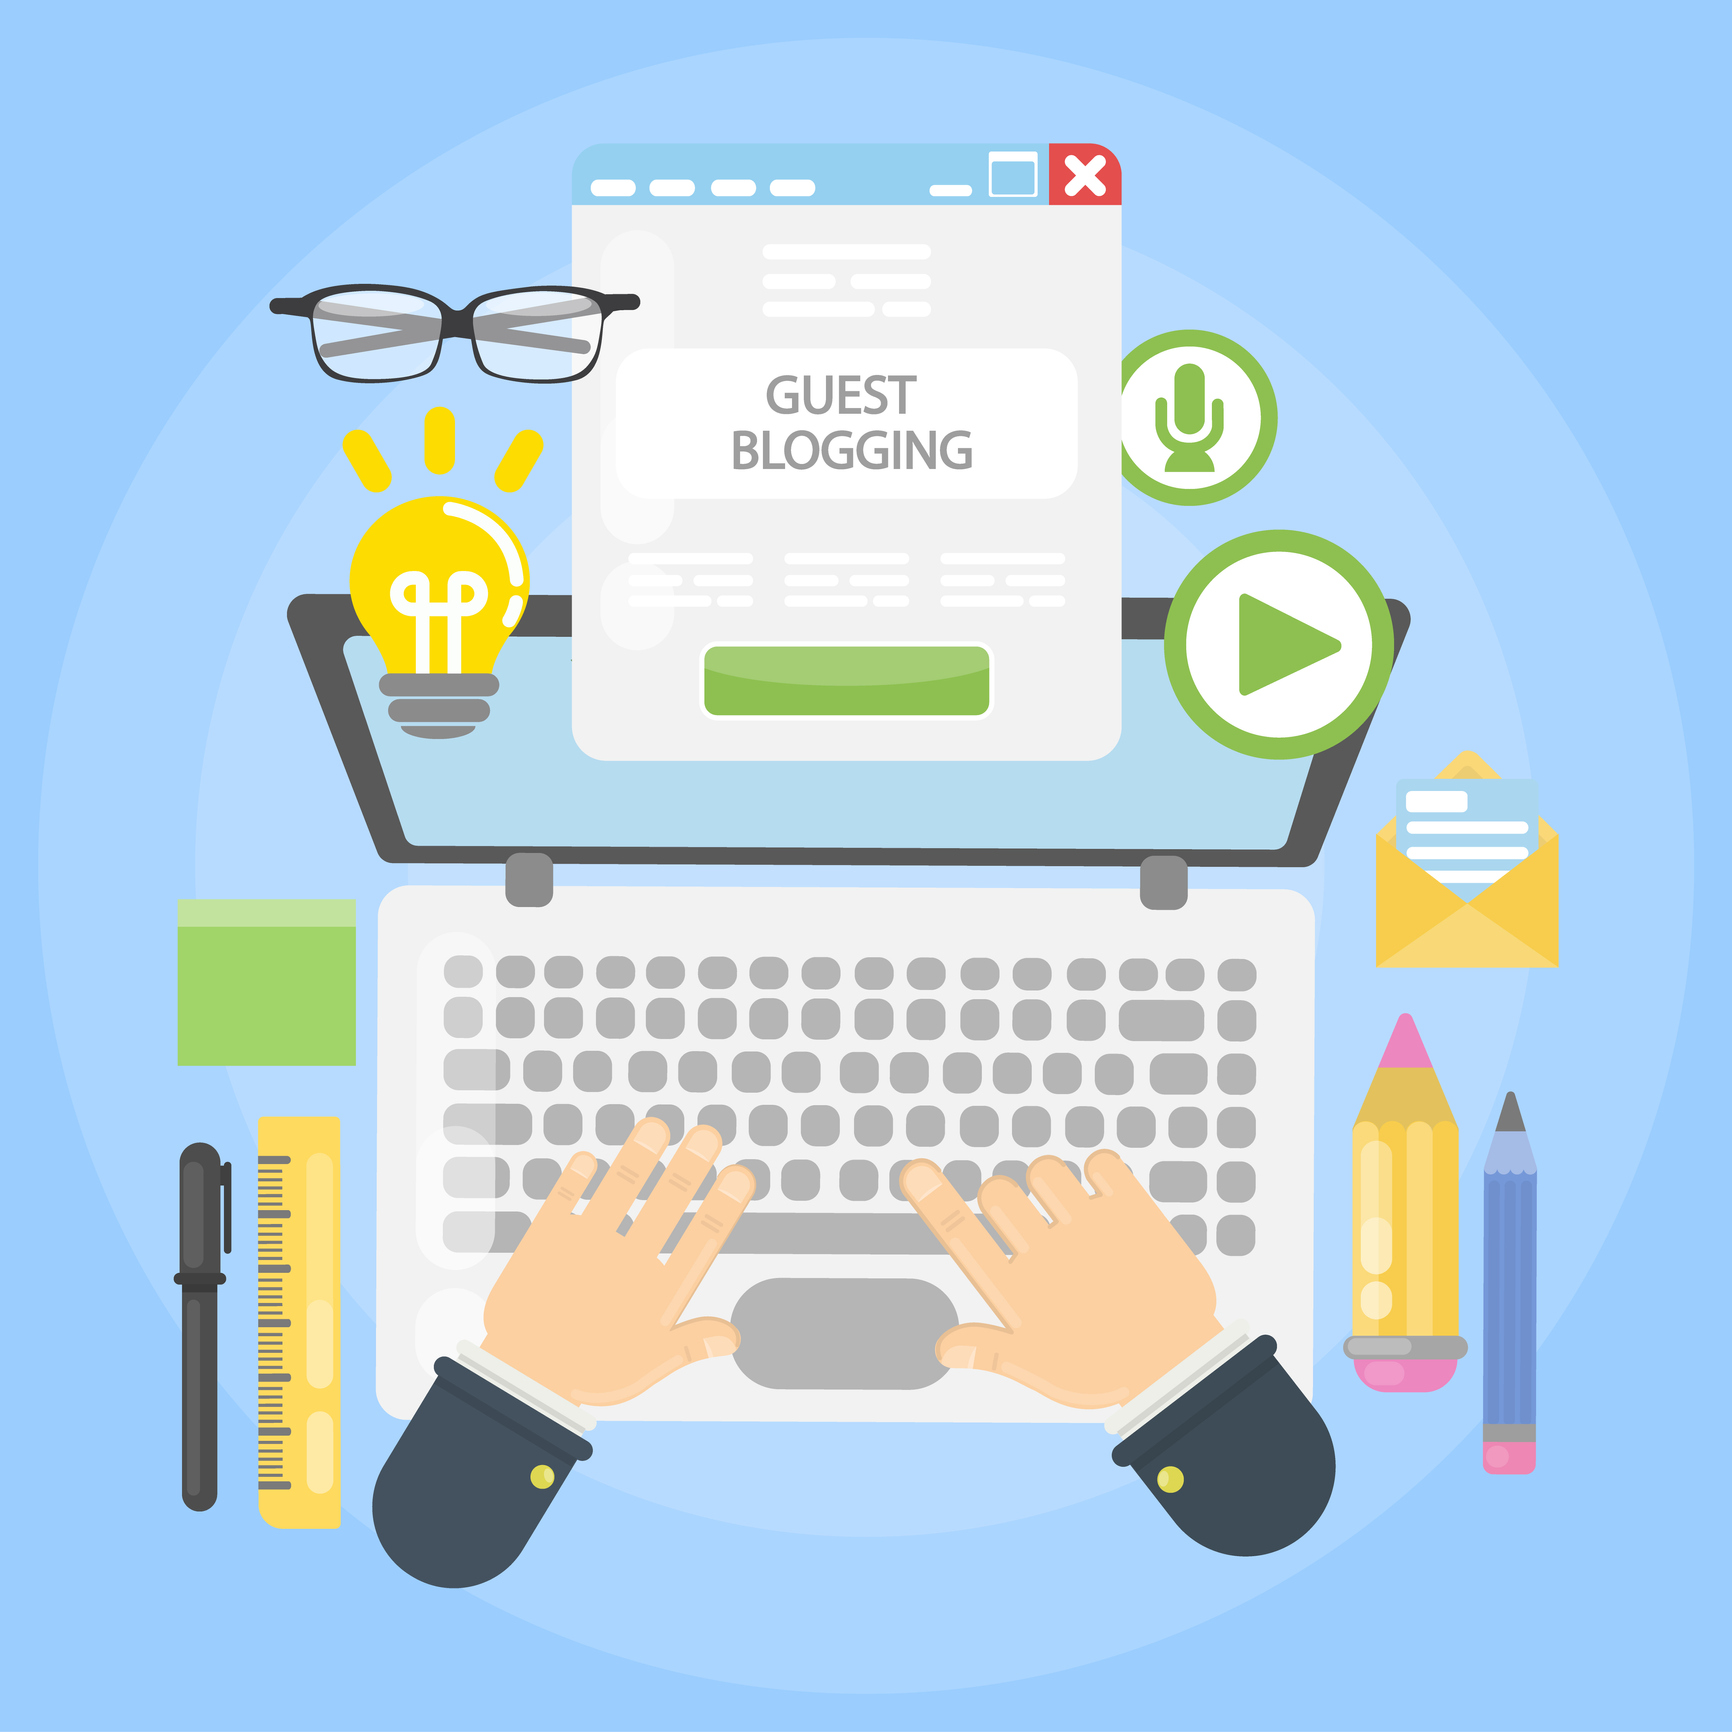 guest blogging graphic